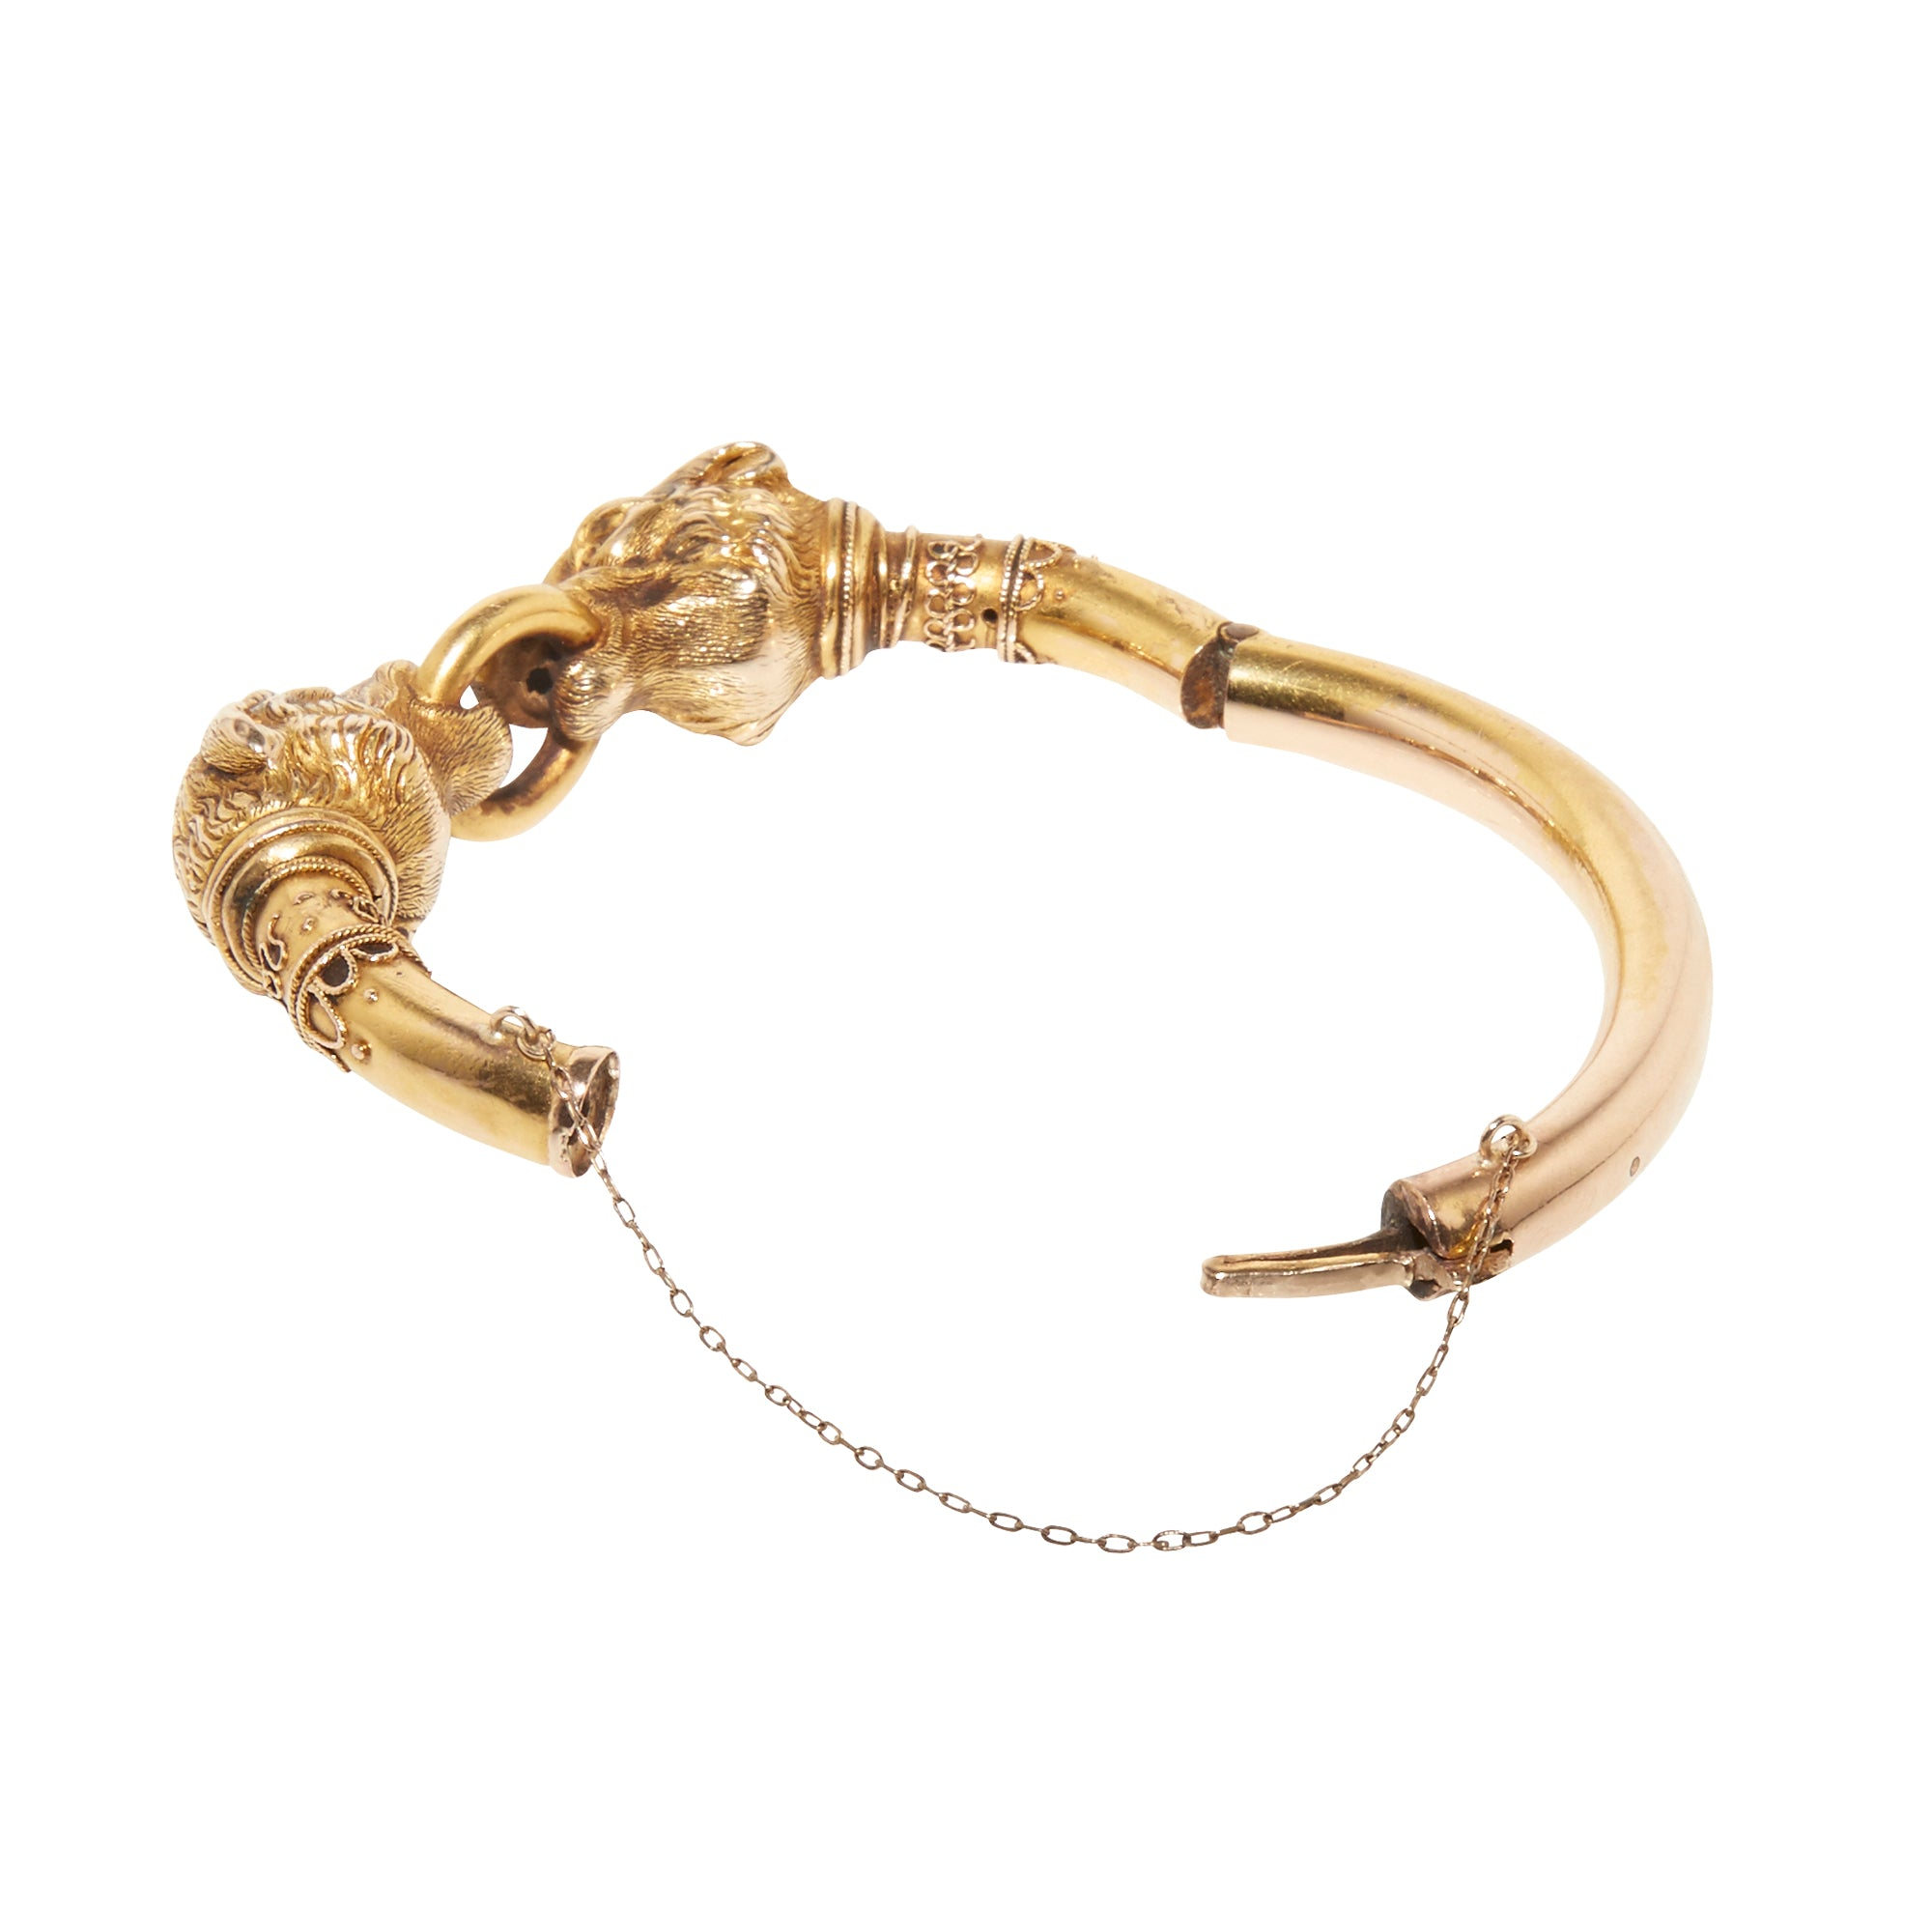 Vintage Gold Hound Head Bracelet for Broken English Jewelry